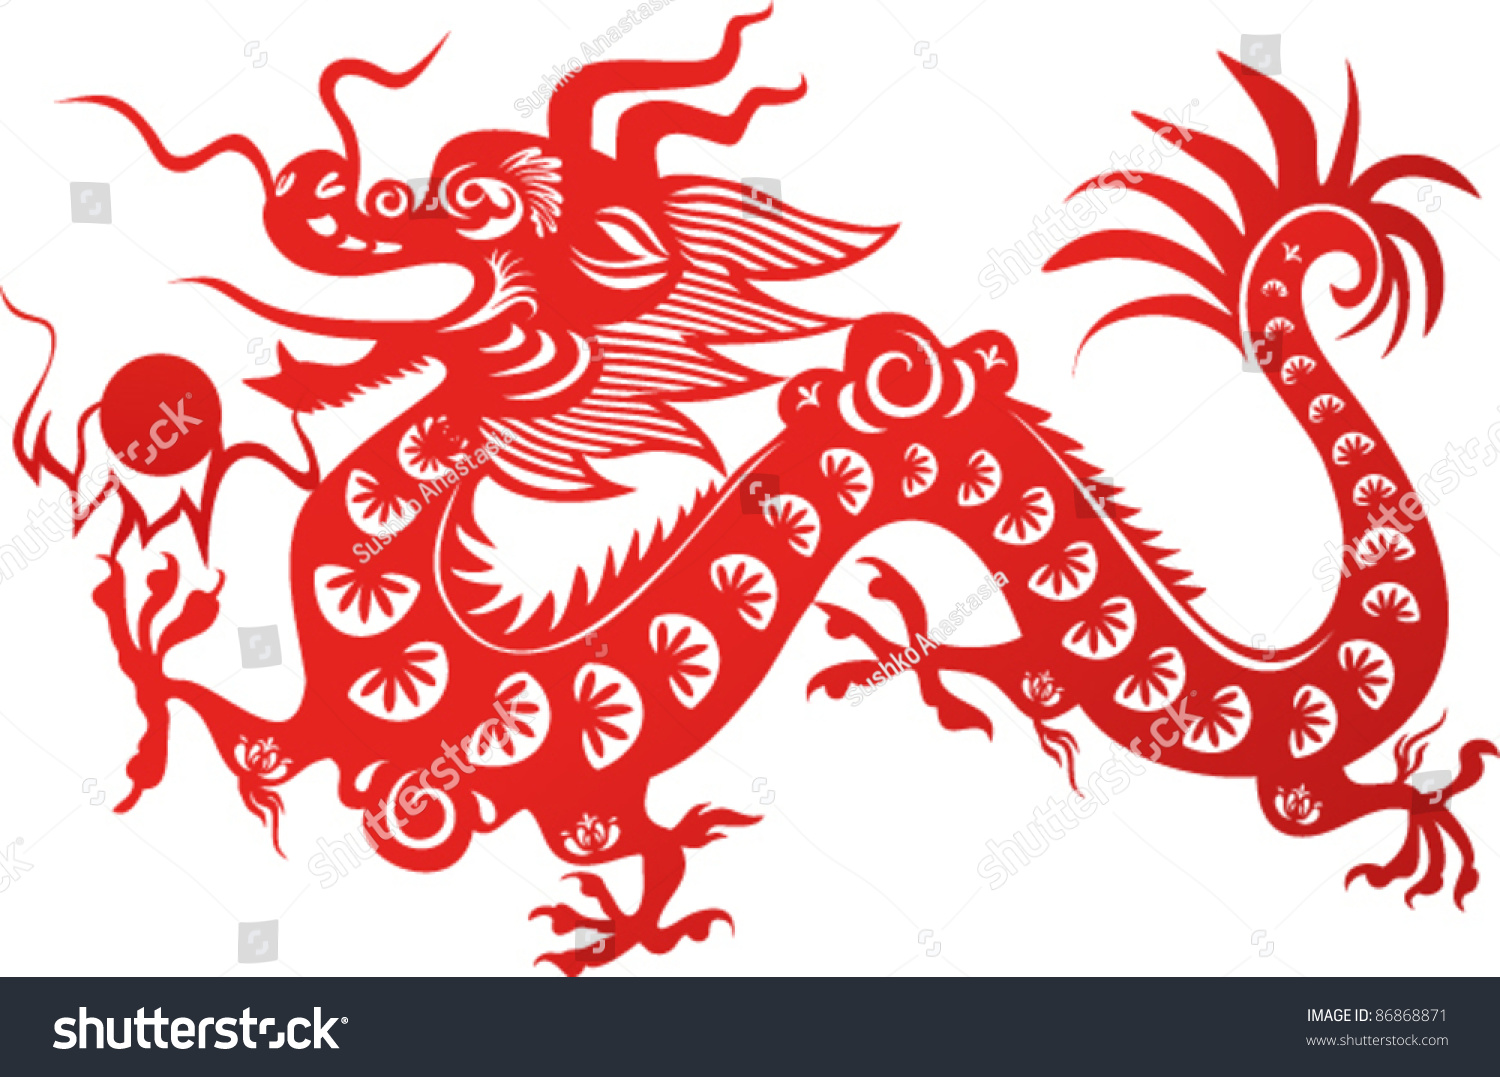 Chinese dragon symbol 2012 year stock vector 86868871 for Chinese vector